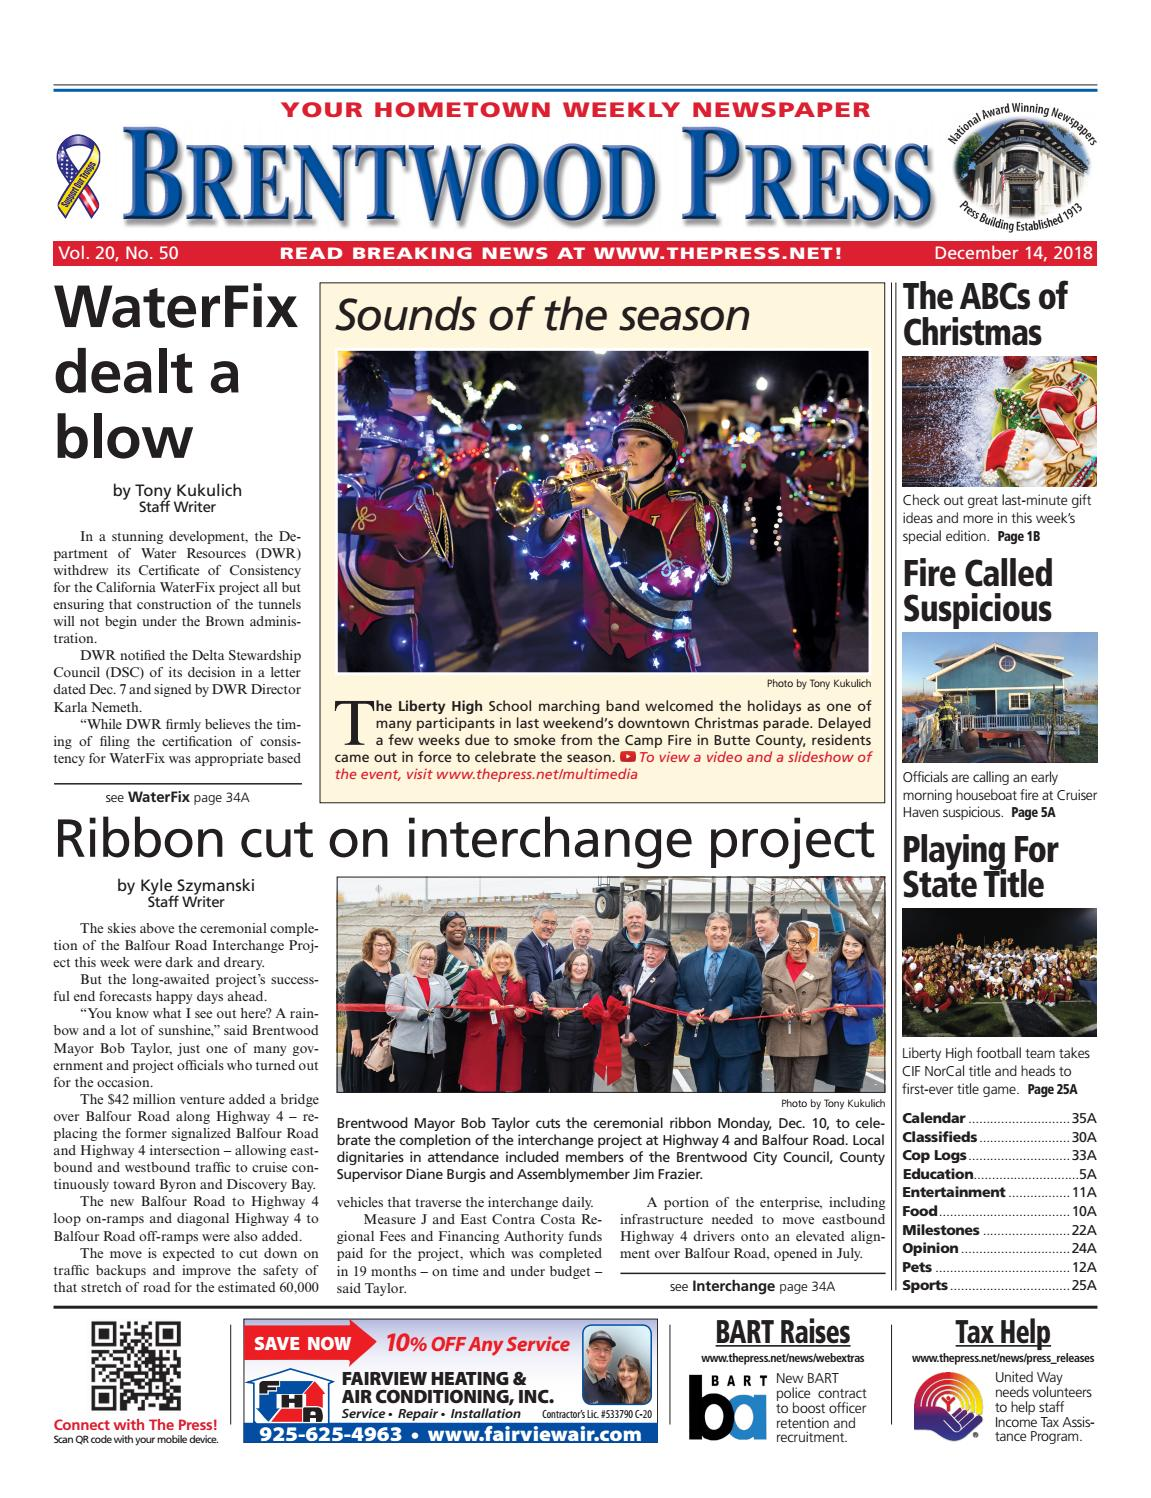 Brentwood Press 12.14.18 by Brentwood Press   Publishing - issuu 152c03393d3bd